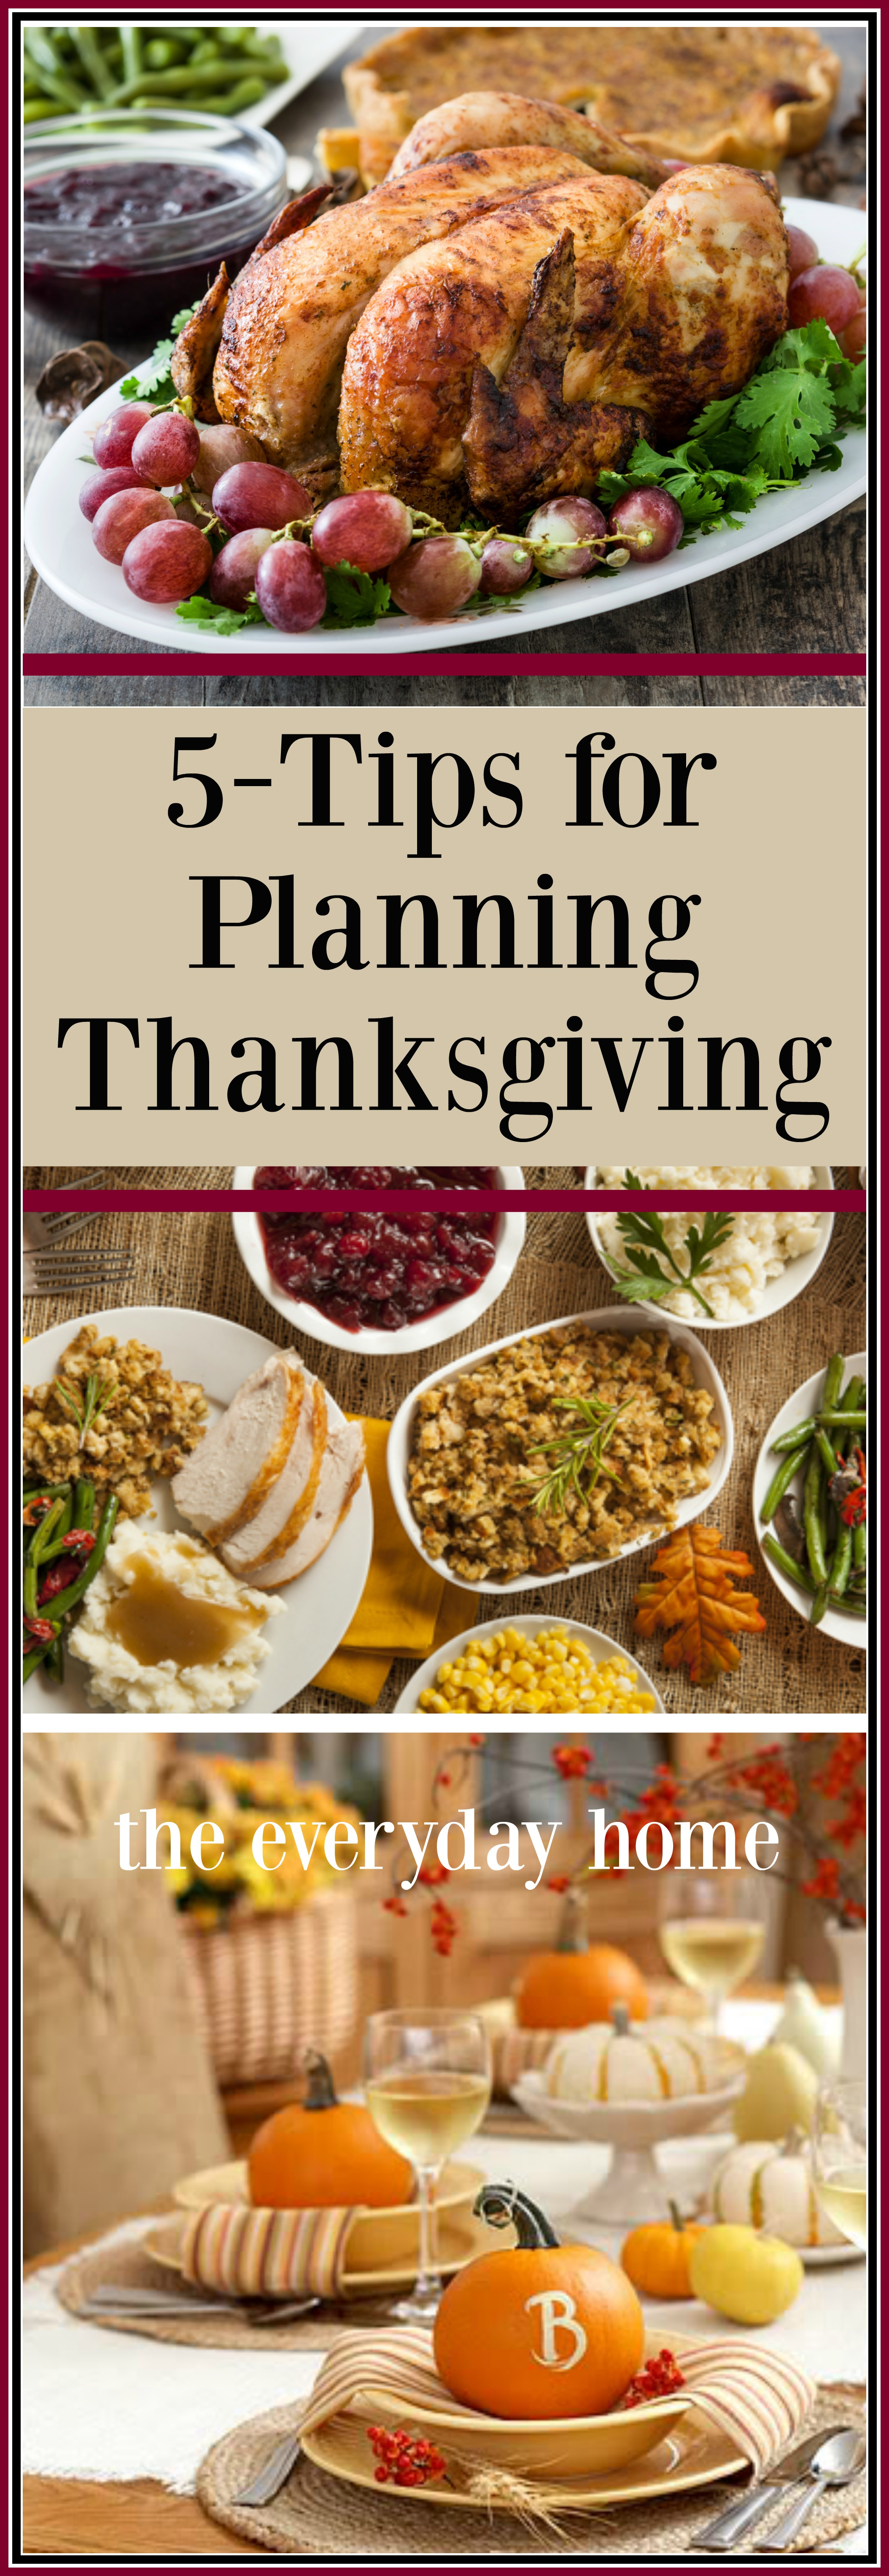 5-Tips for Planning a Successful Thanksgiving   The Everyday Home   www.everydayhomeblog.com